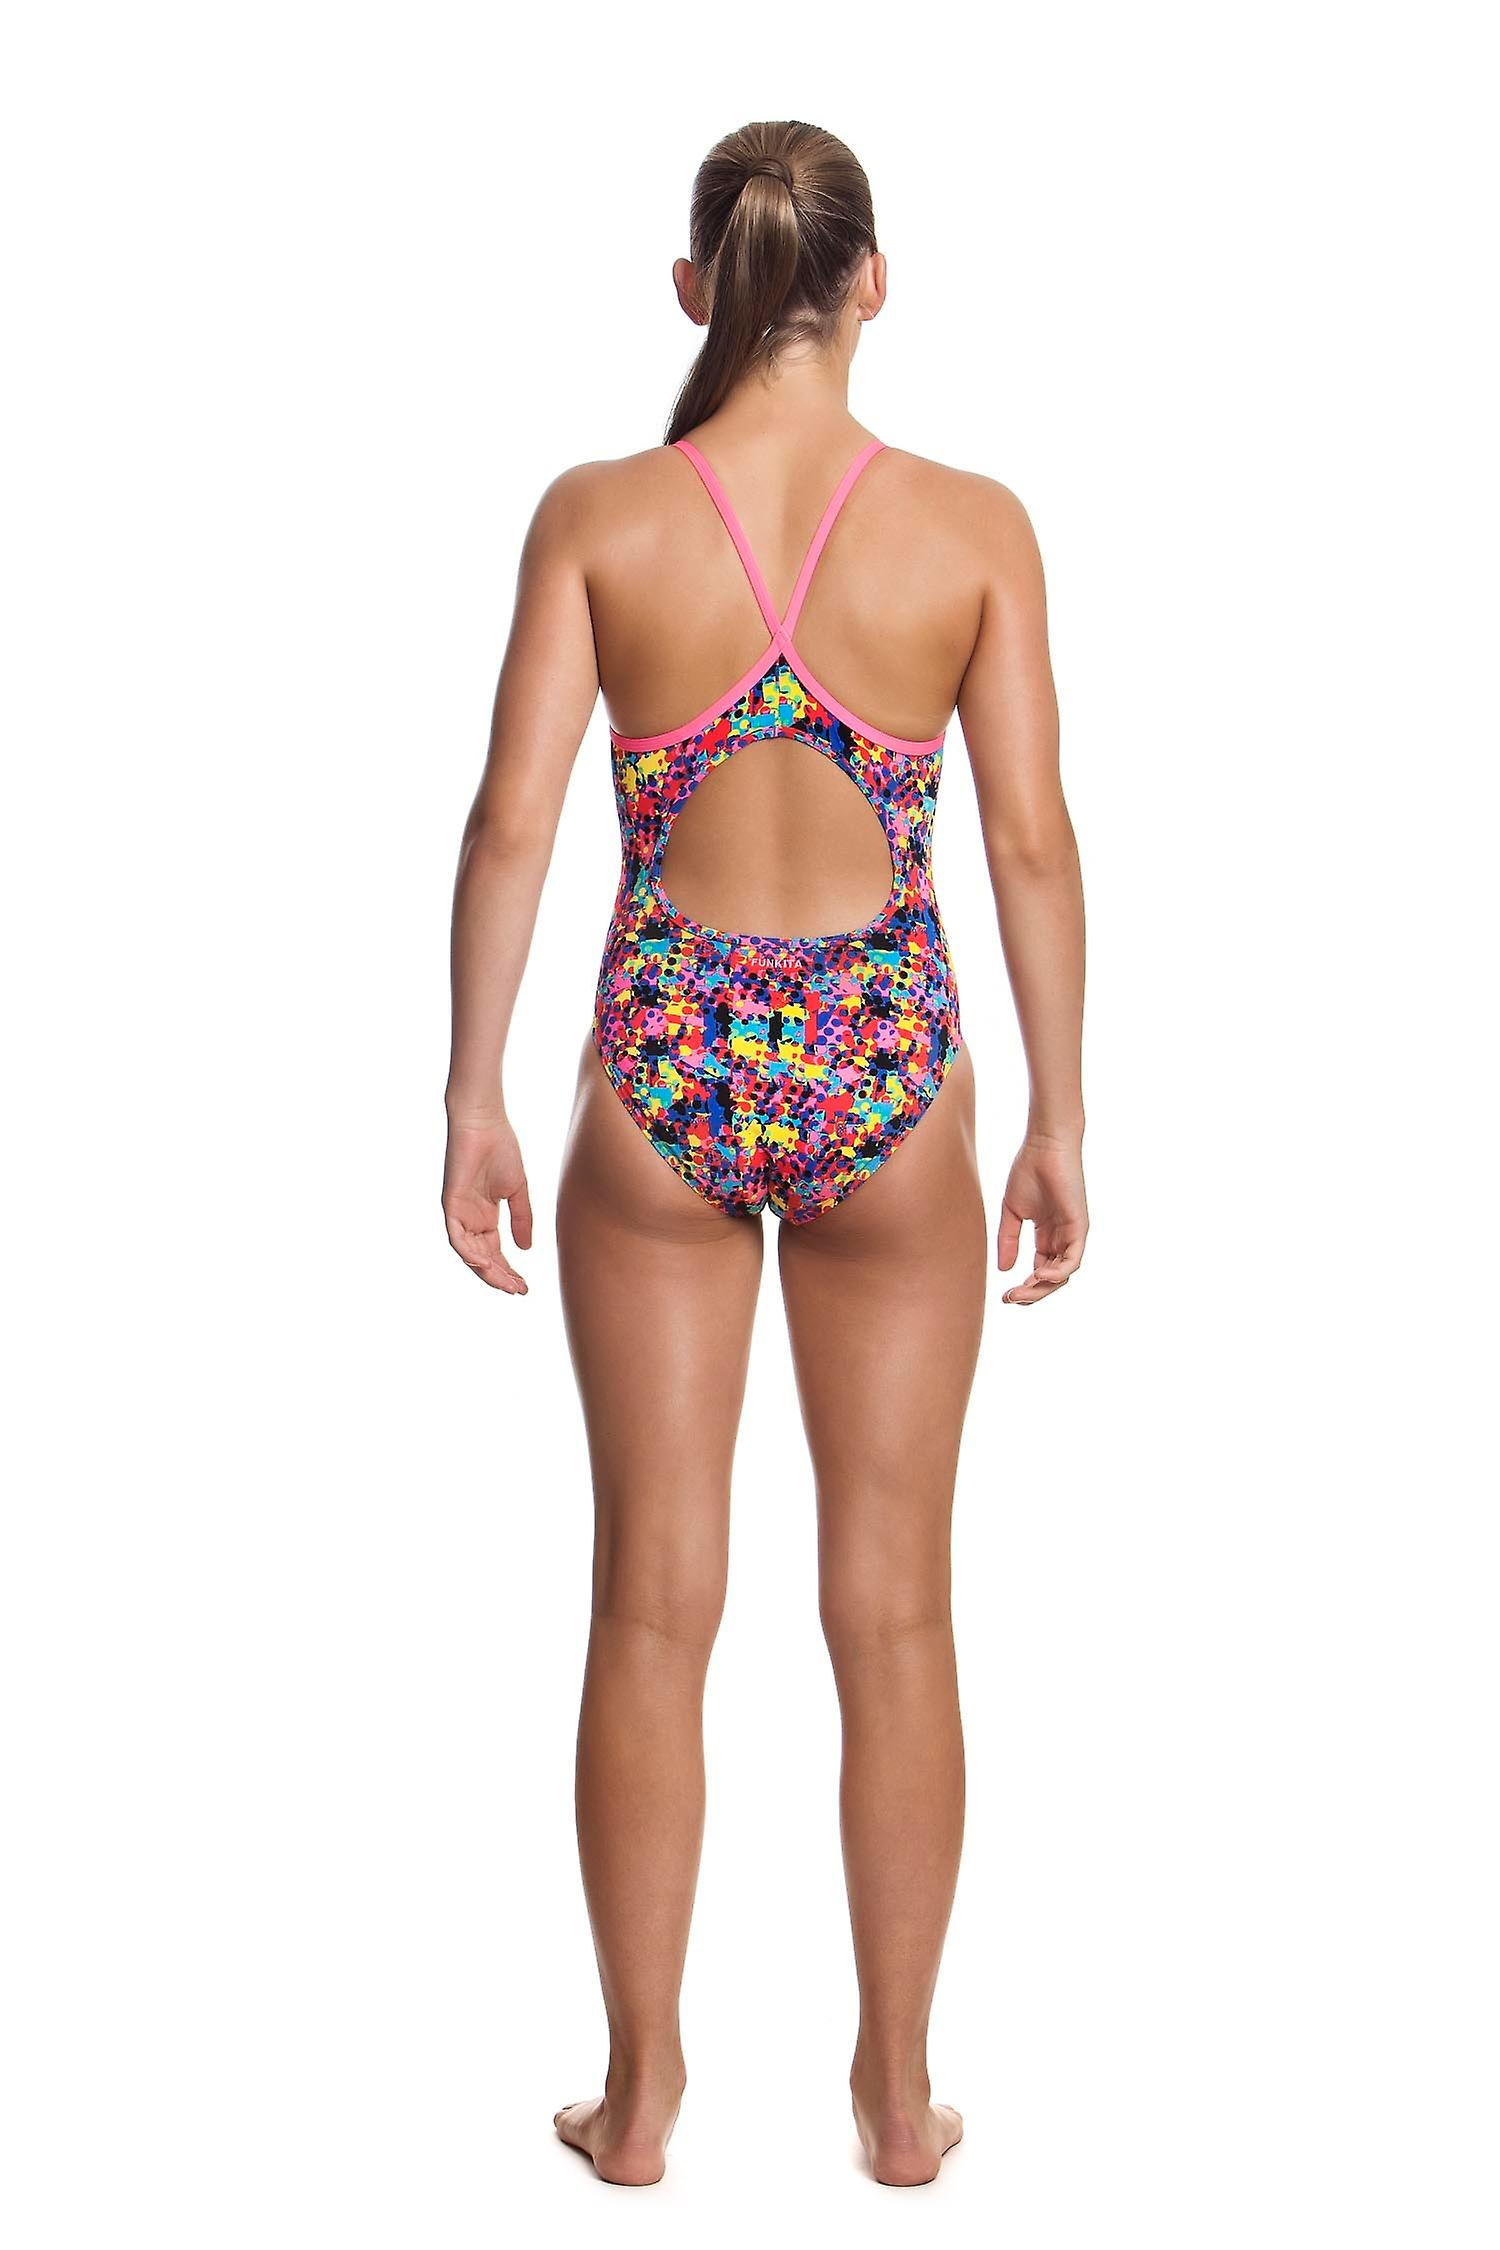 Funkita Girls Diamond Back One Piece Swim Suit - Paintballs